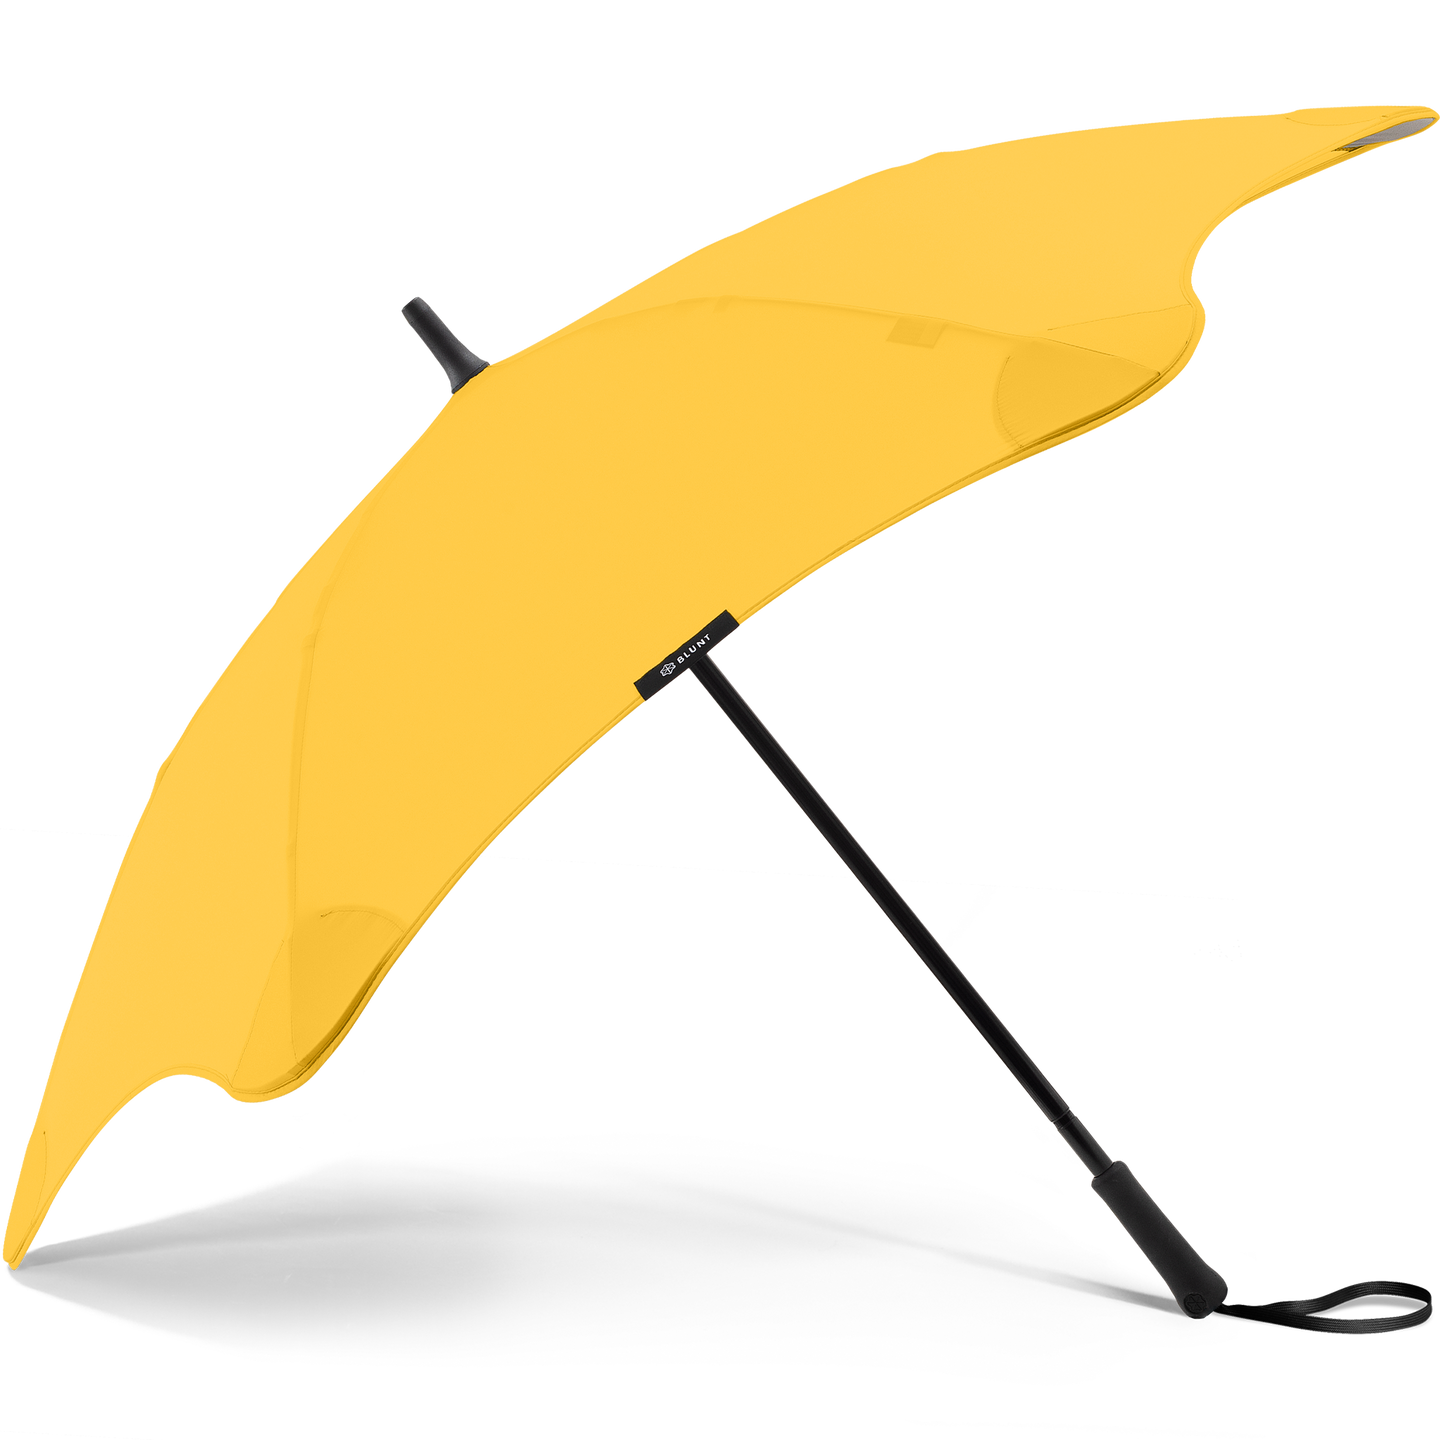 2020 Yellow Coupe Blunt Umbrella Side View